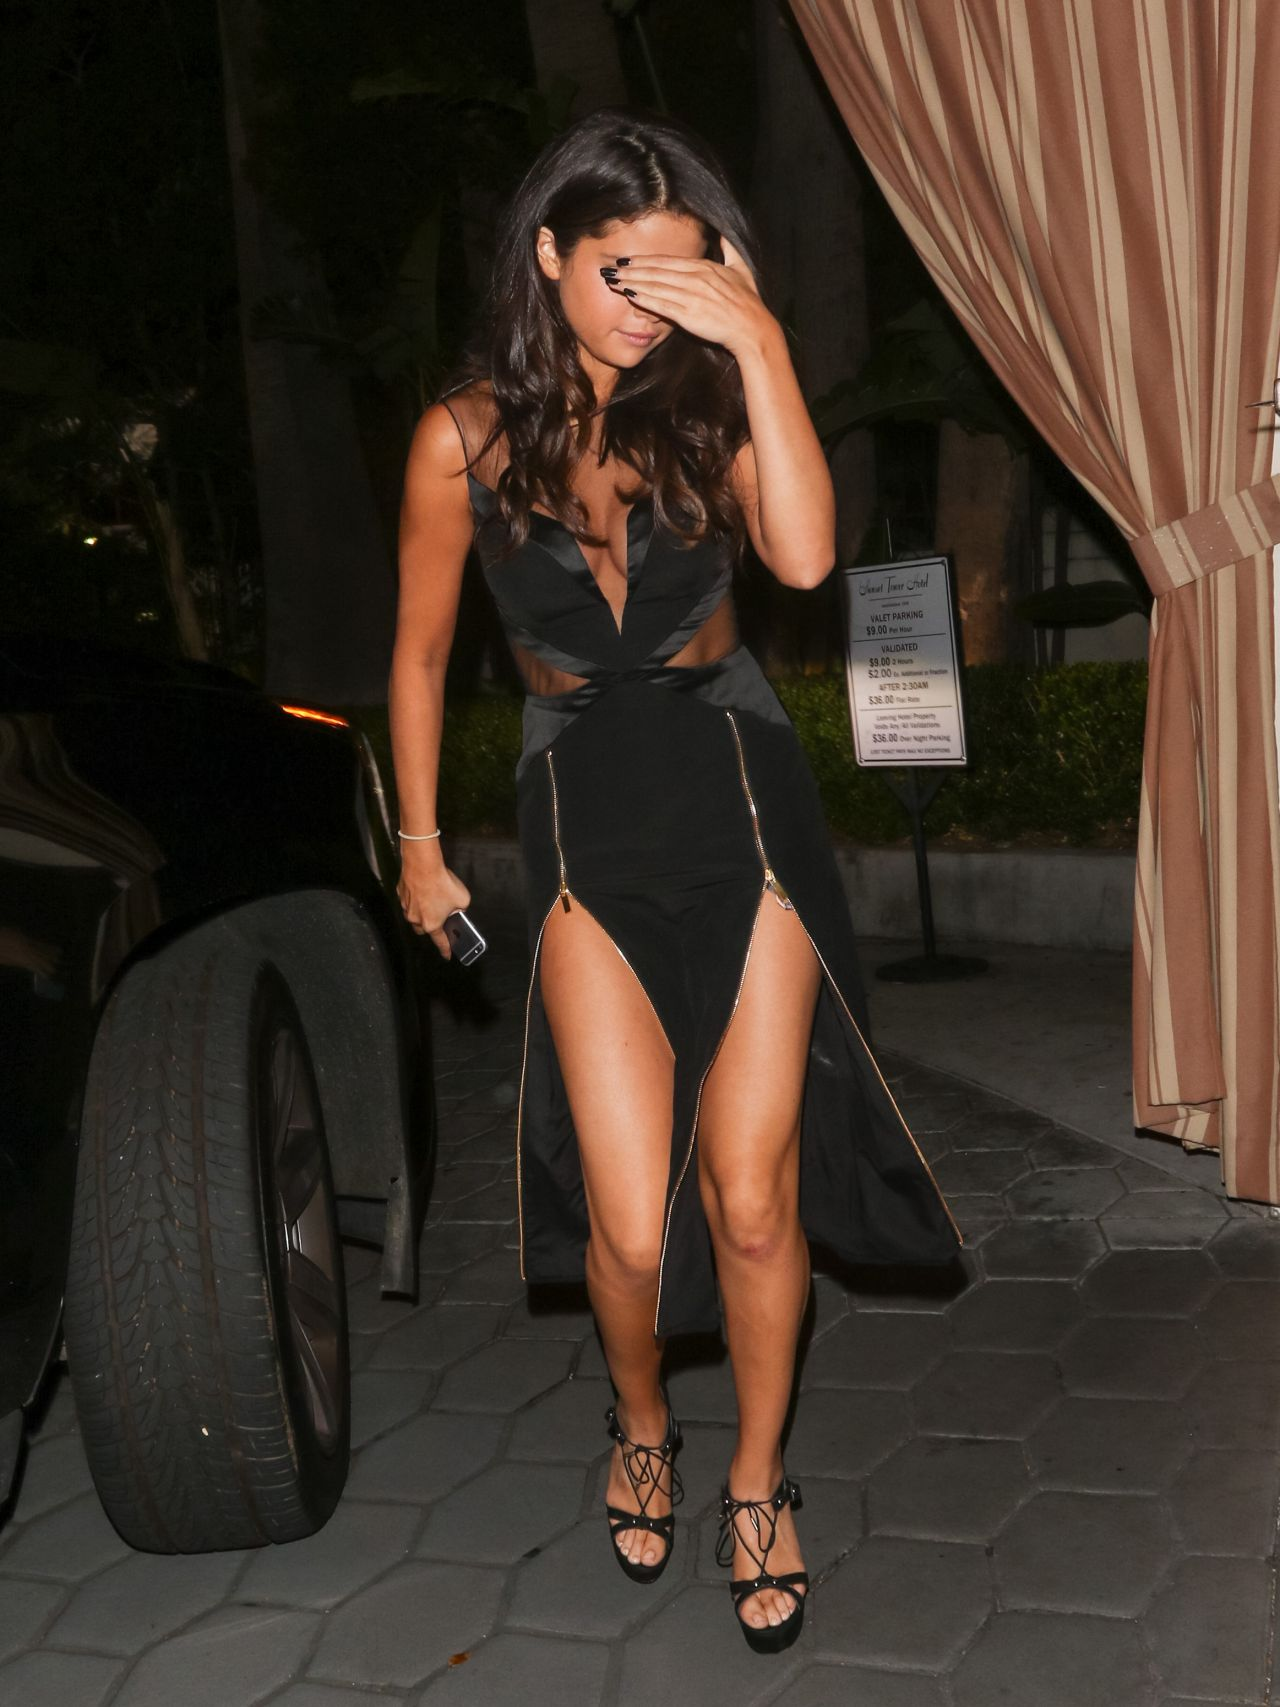 selena-gomez-leggy-entering-sunset-tower-hotel-la-august-2015_2